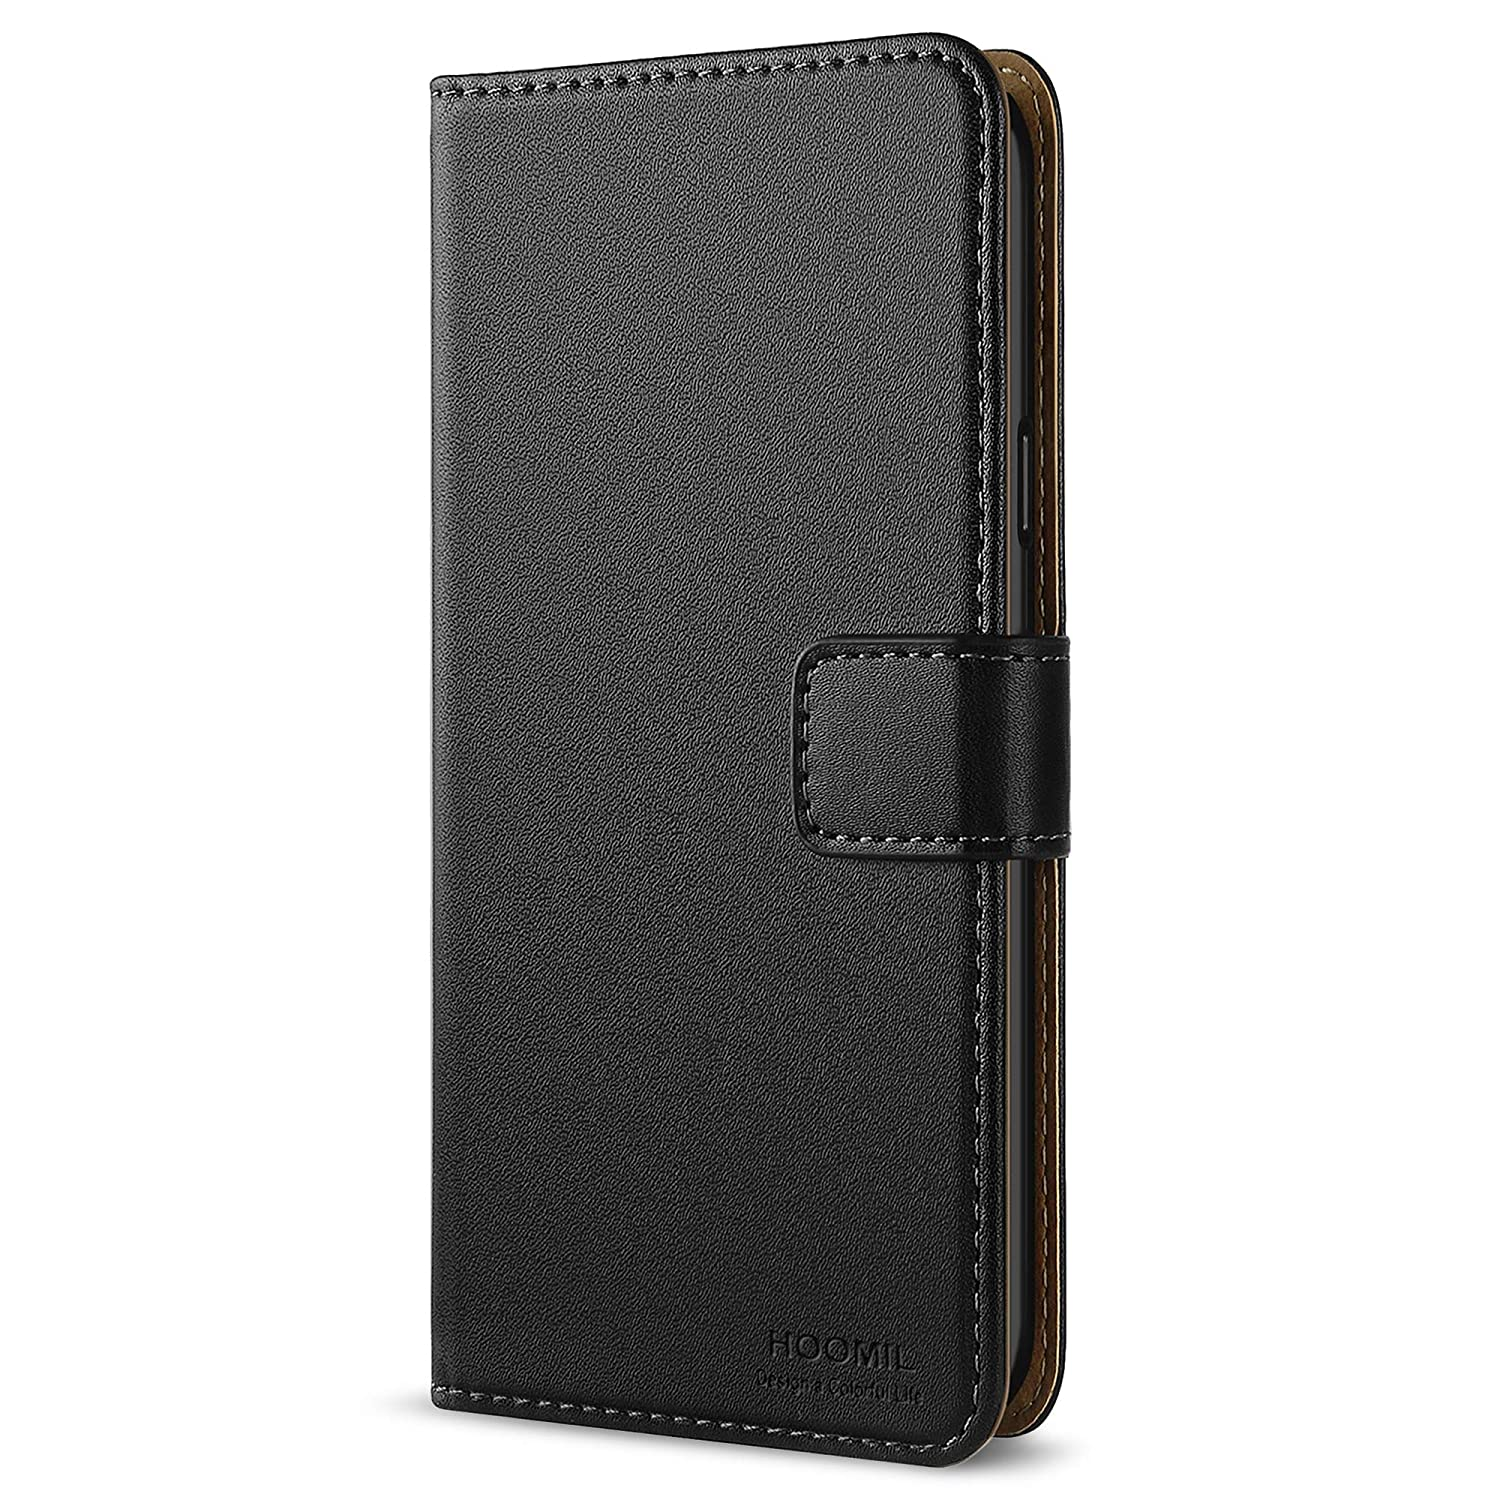 huge discount 1f1fb 974c2 HOOMIL Samsung A5 2016 Case, Premium Leather Case for Samsung Galaxy A5  (2016) Phone Cover - Black